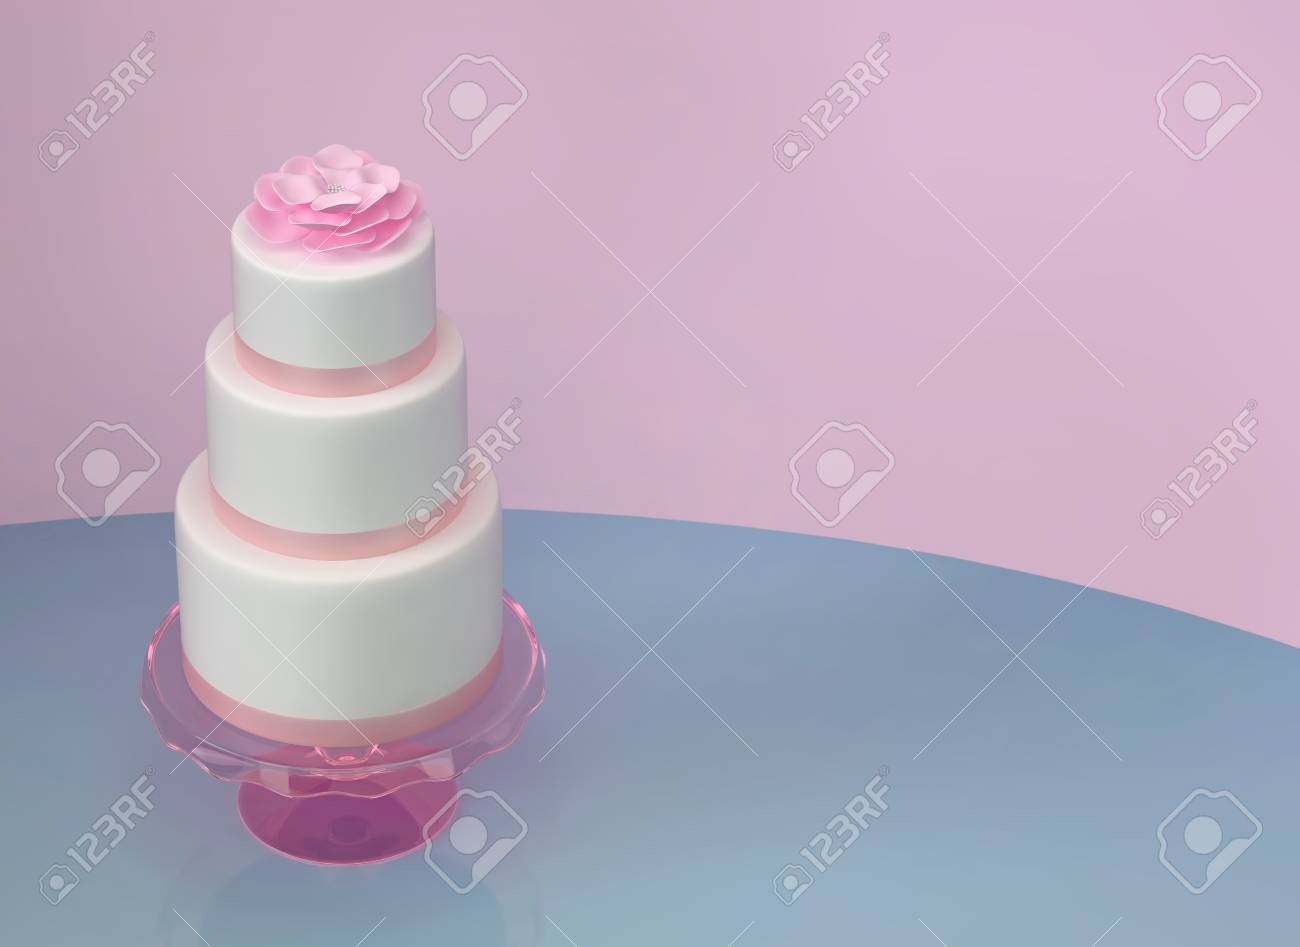 Wedding Cake Birthday Cake With Pink Flower On Blue And Pink